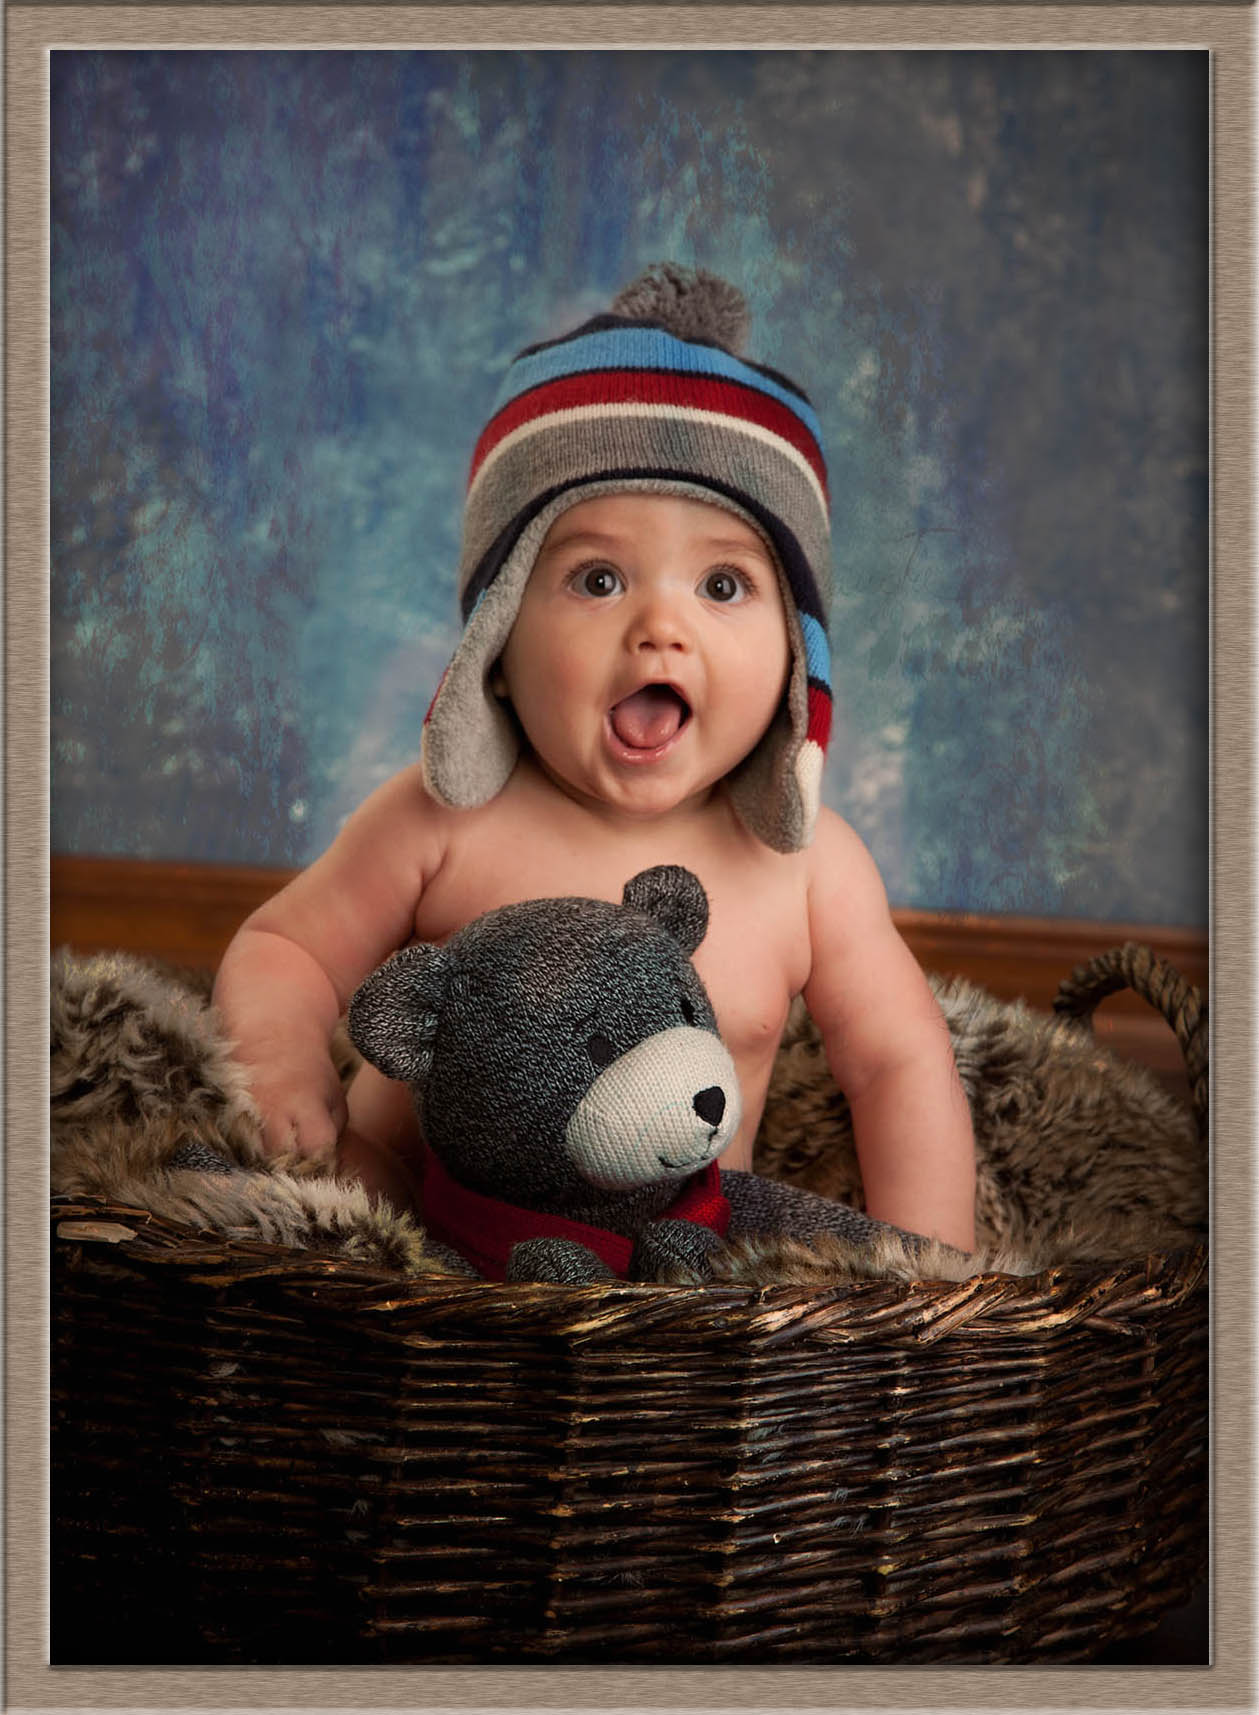 Oregon couture baby in a basket studio photography in lake oswego